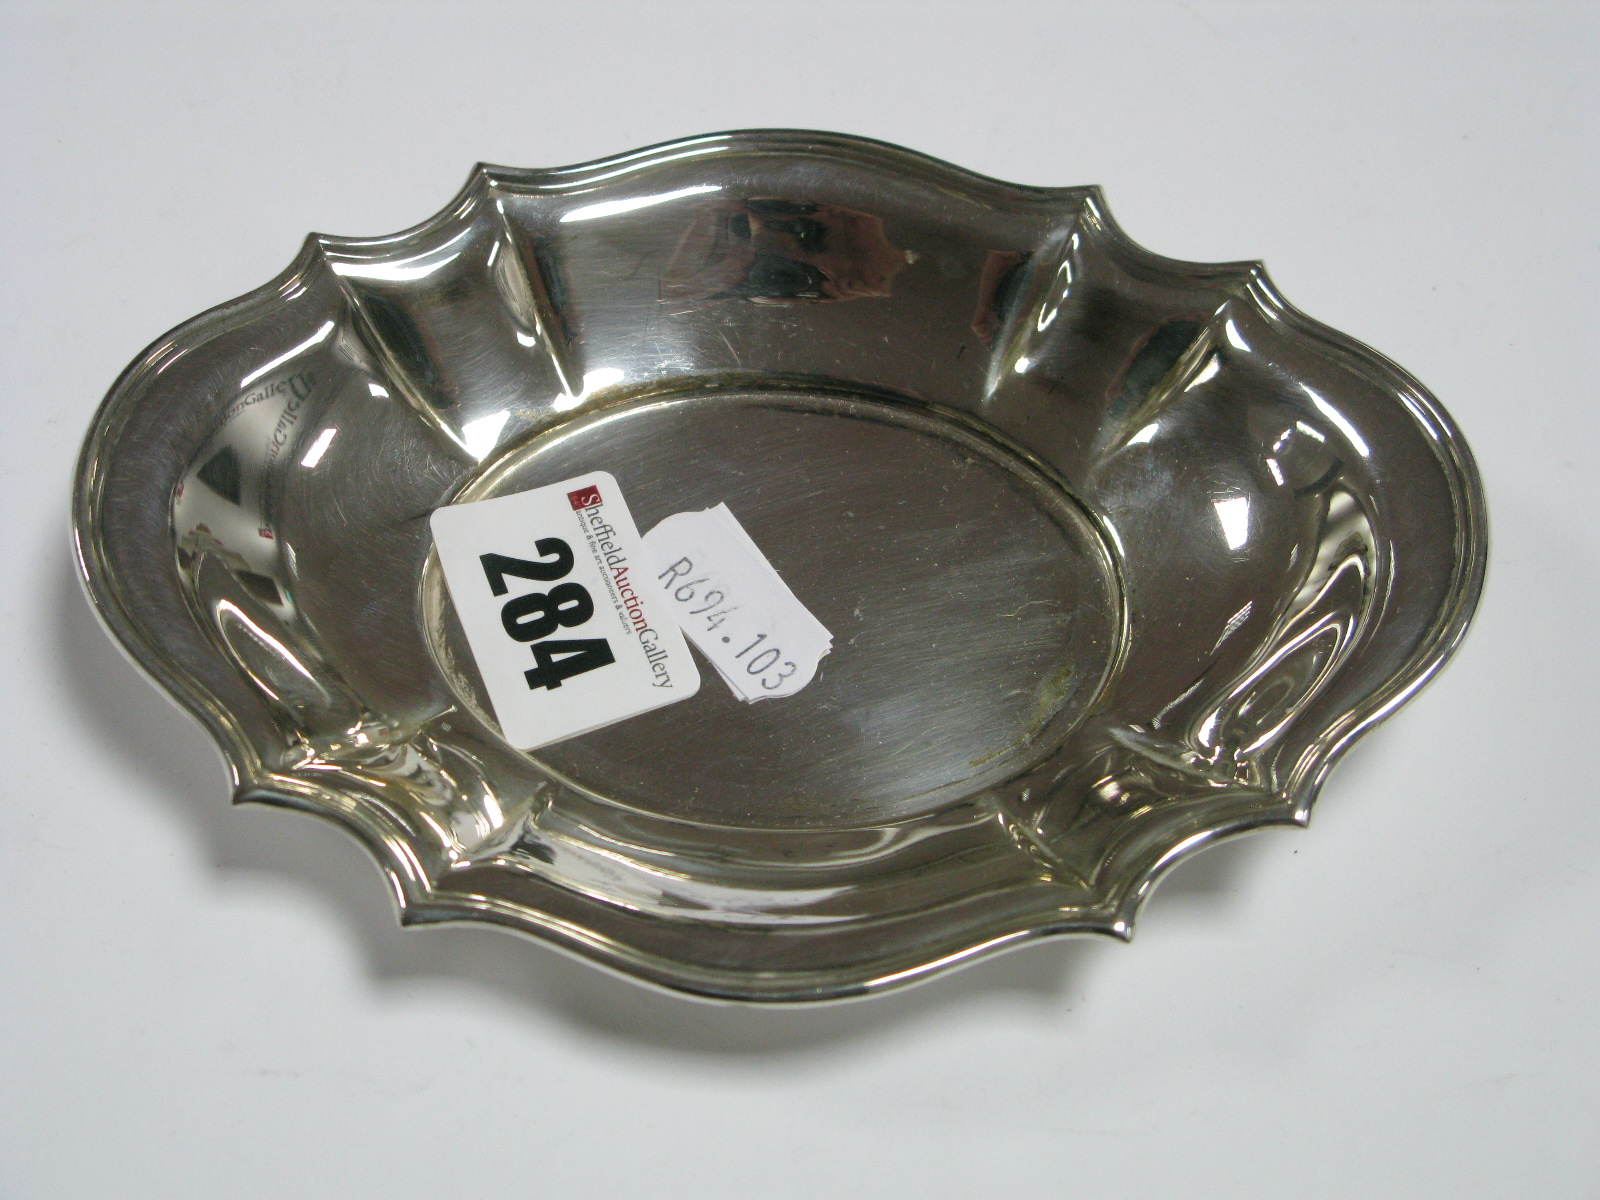 Lot 284 - A Hallmarked Silver Trinket Dish, of shaped oval form, 14.7cm wide.